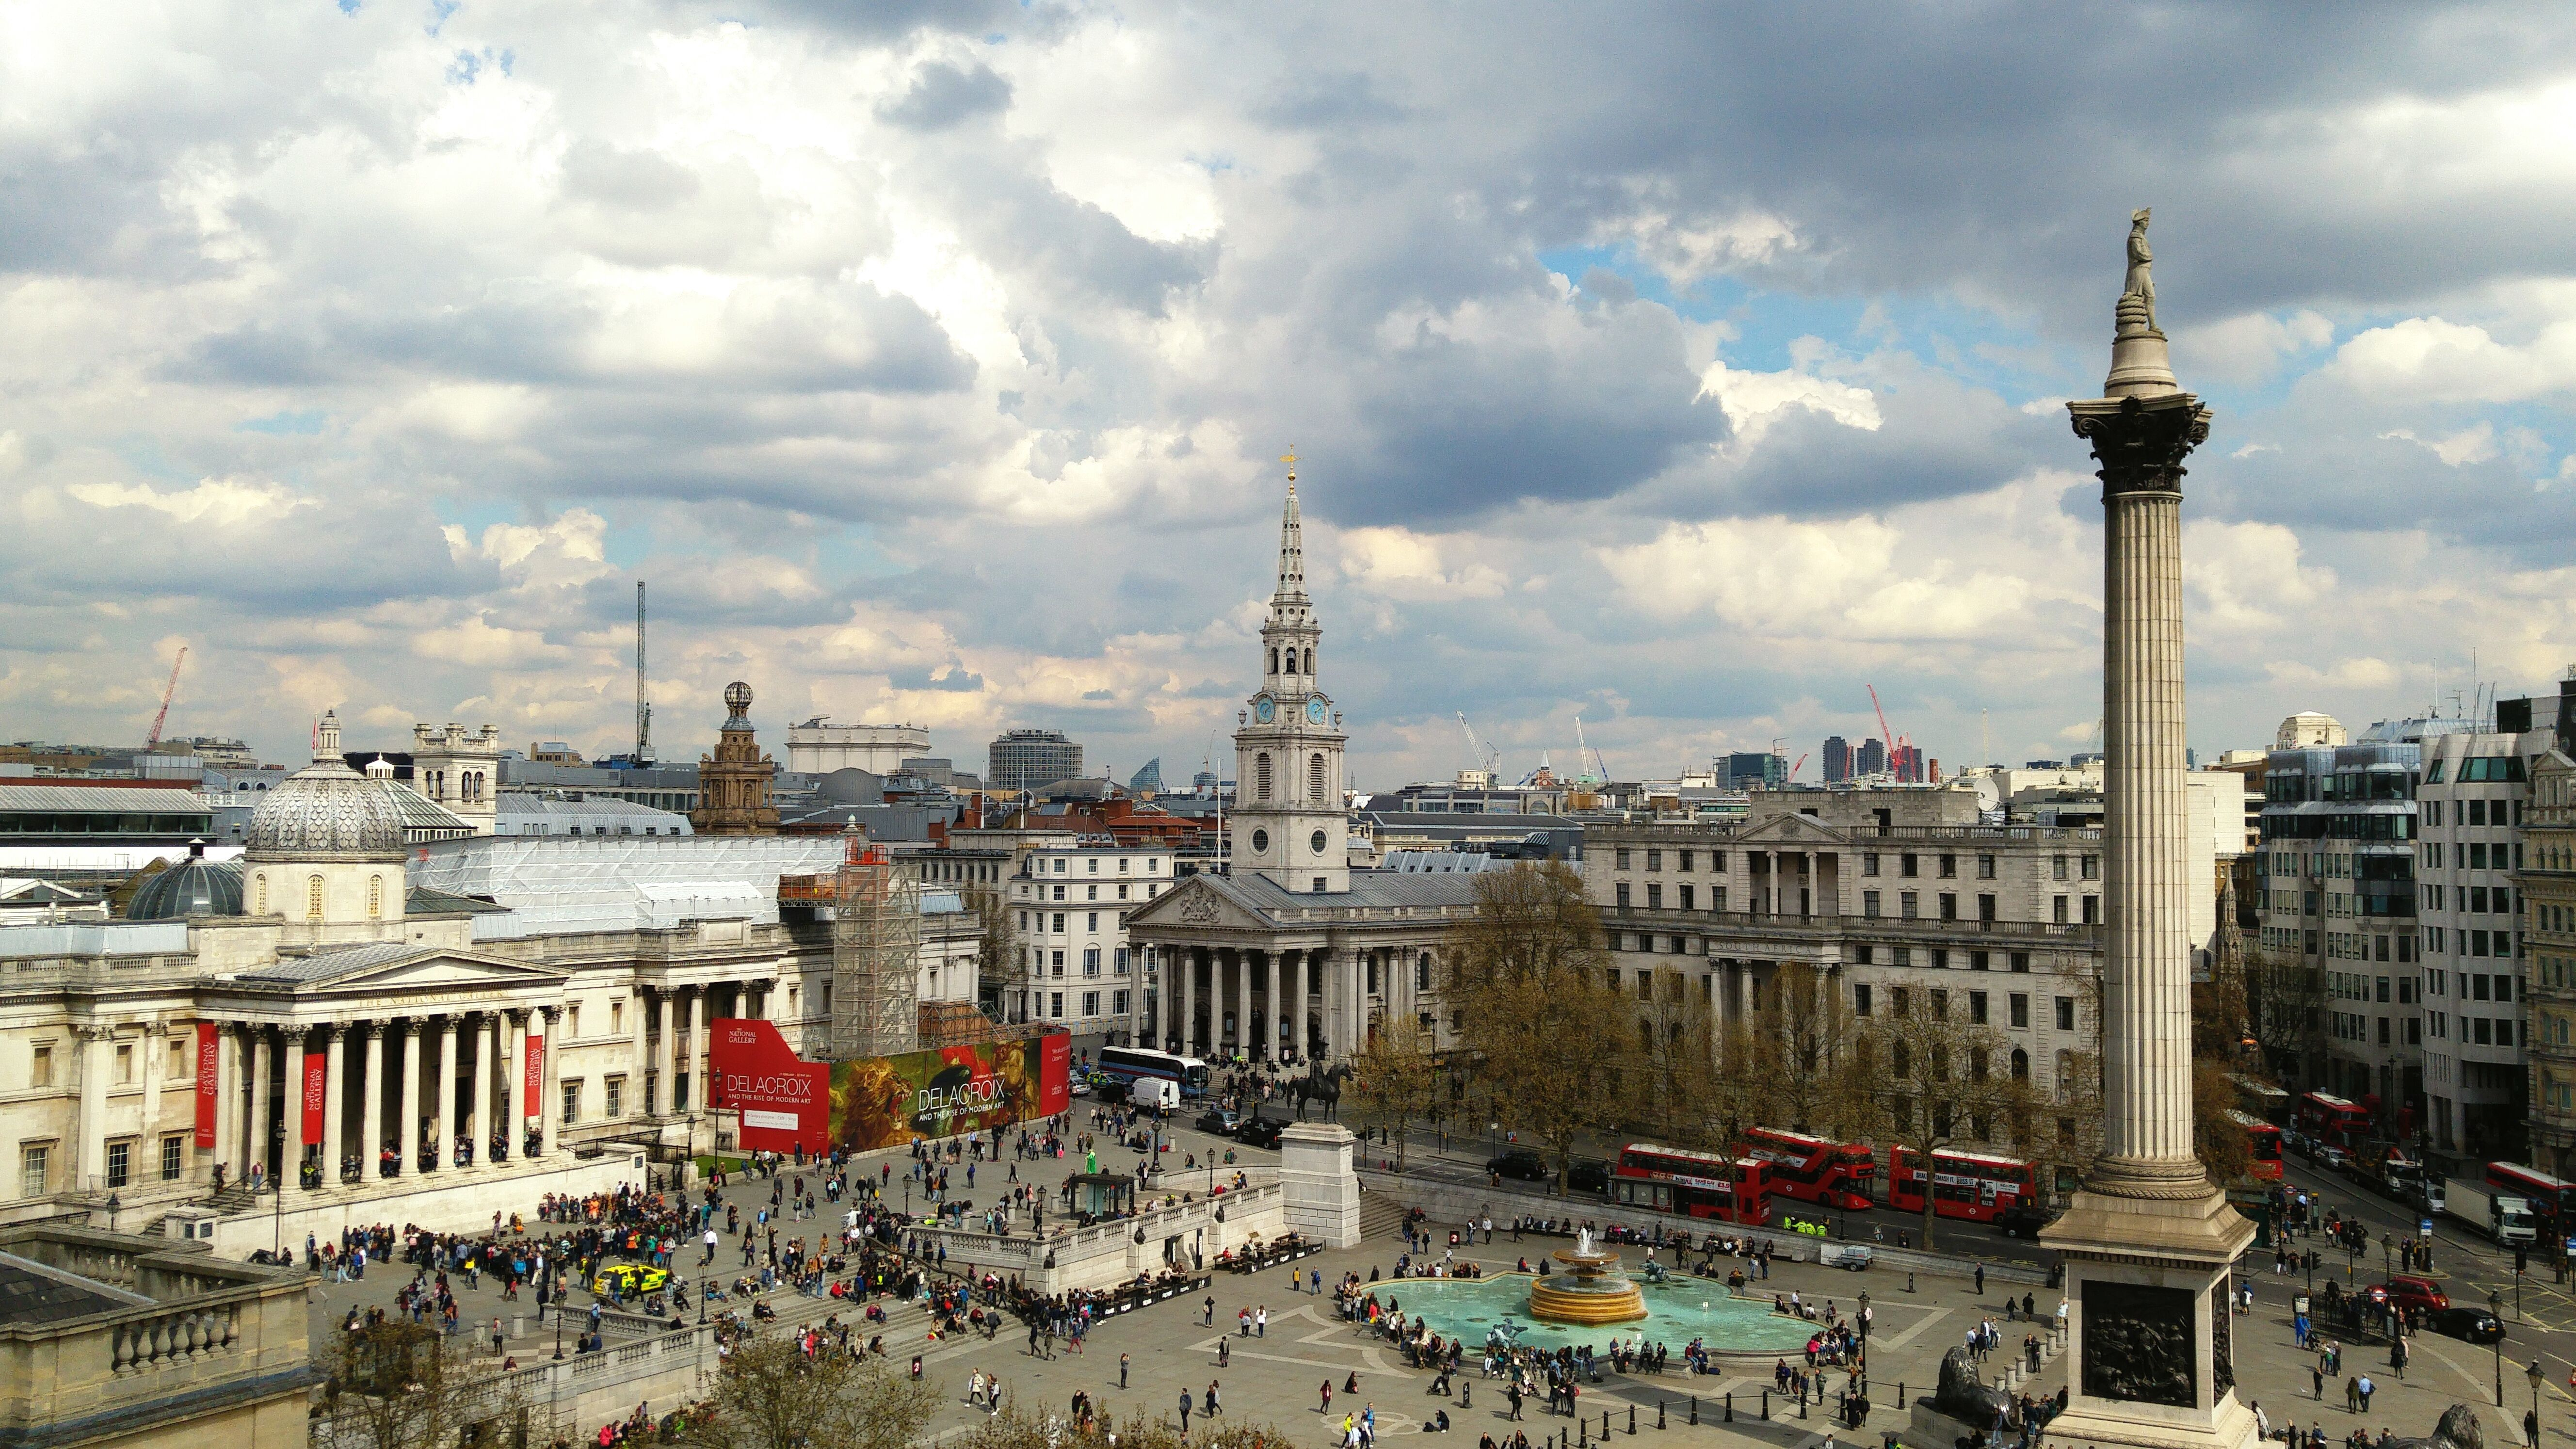 Nelson Column at Trafalgar Square in the city against a cloudy sky